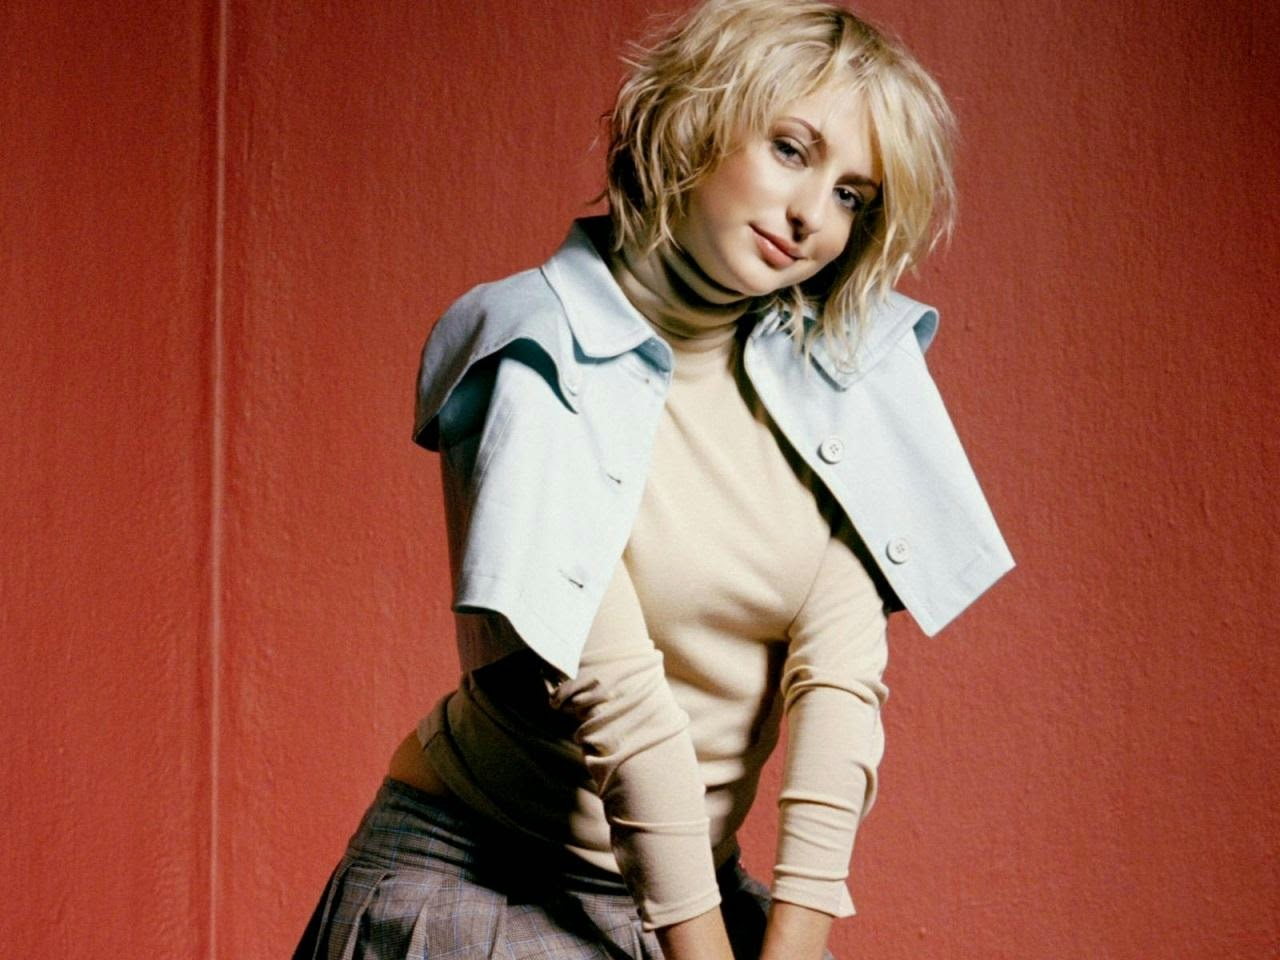 Ali Bastian Wallpapers Free Download